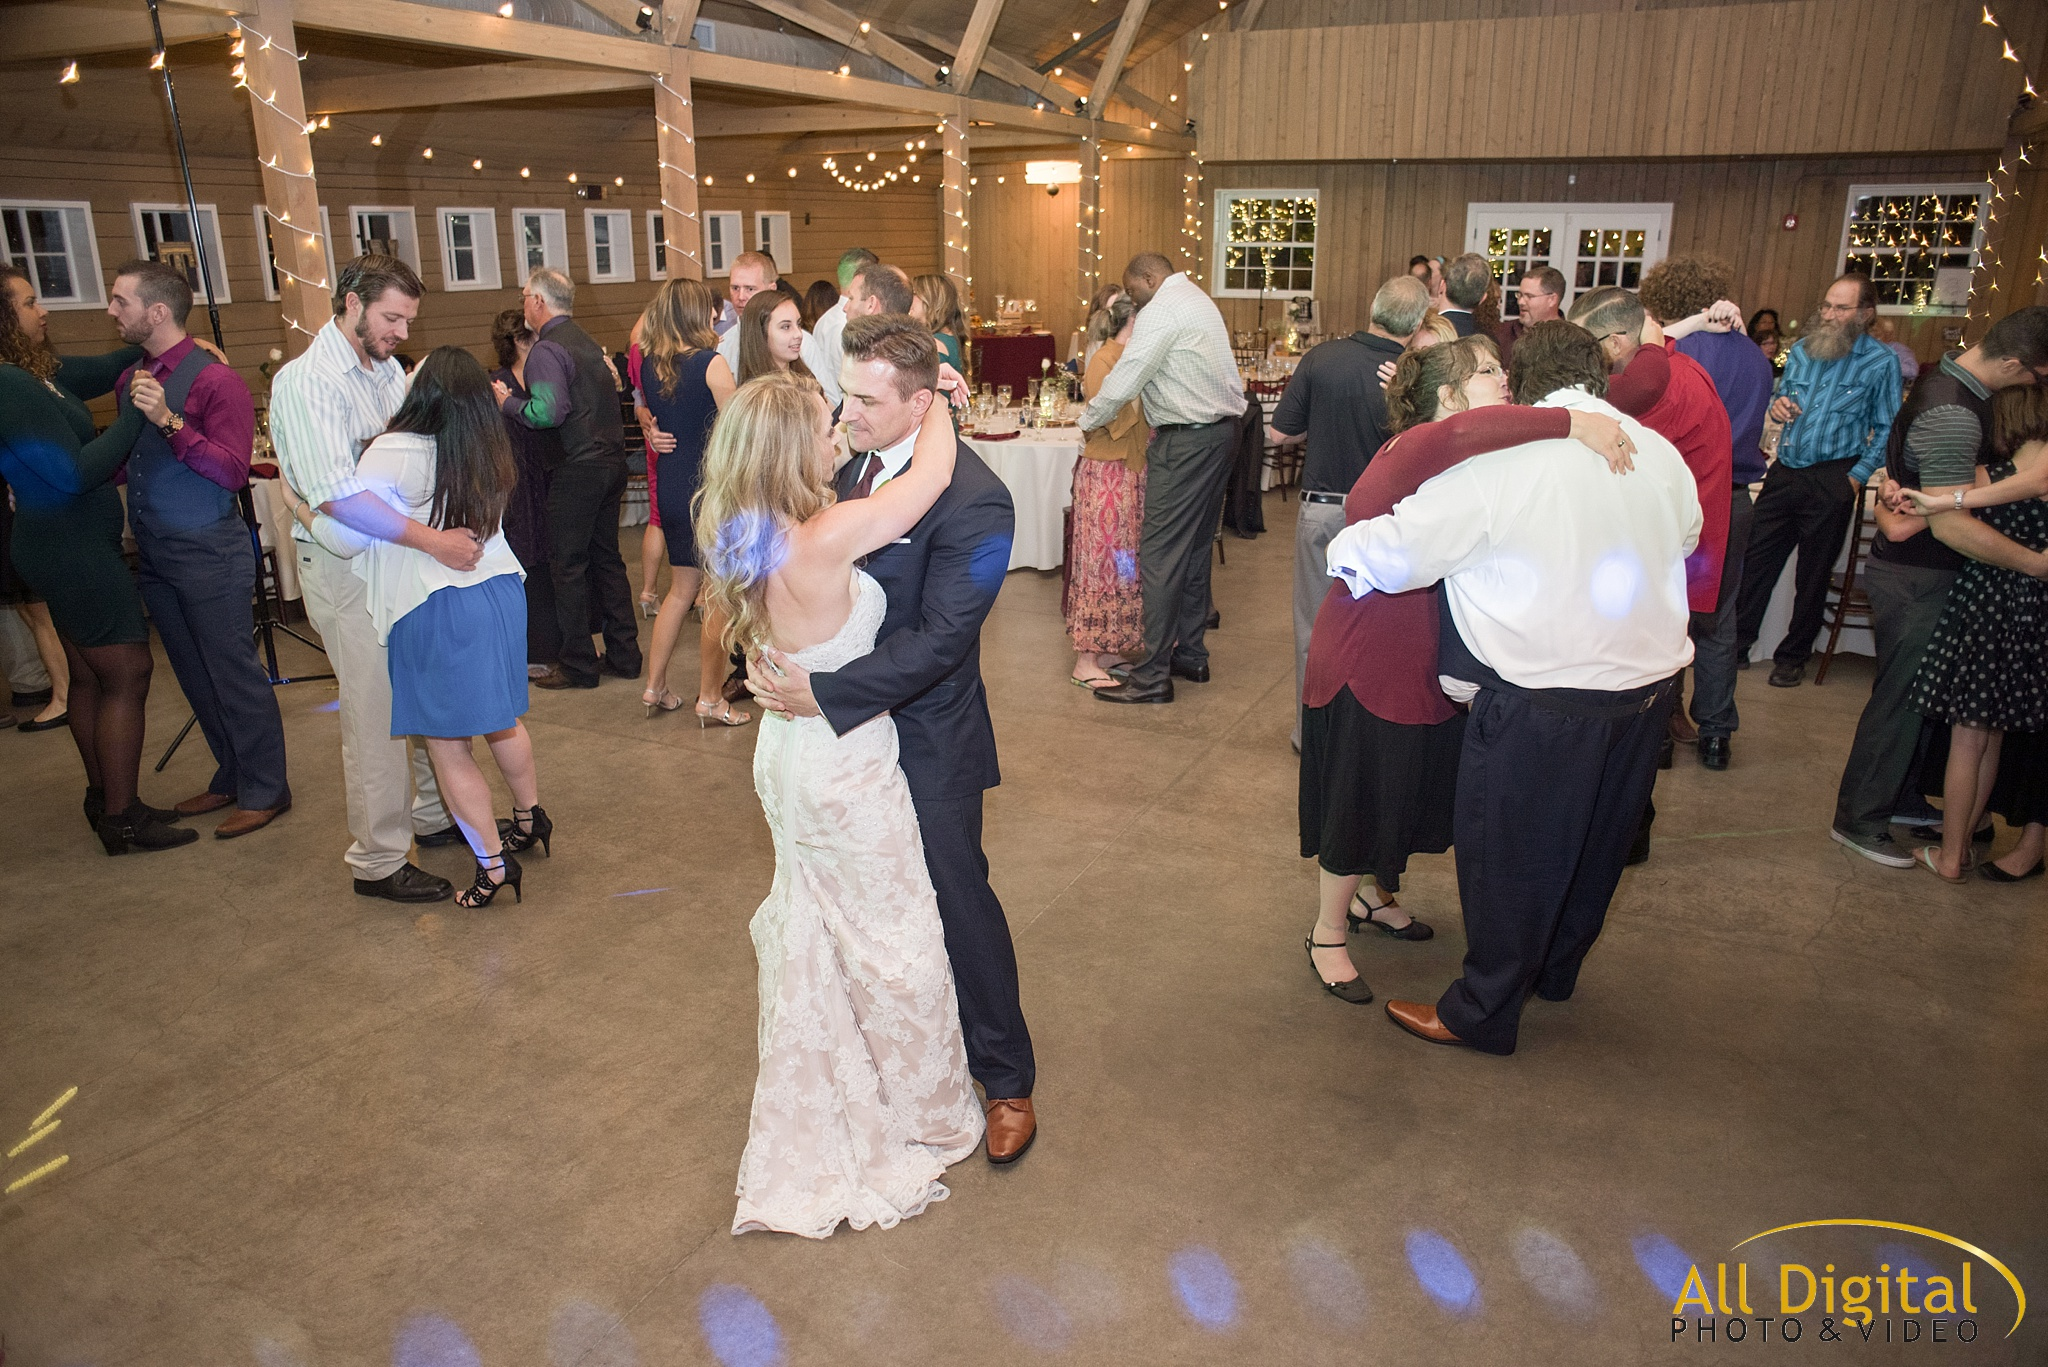 Dancing at the reception at the Barn at Raccoon Creek